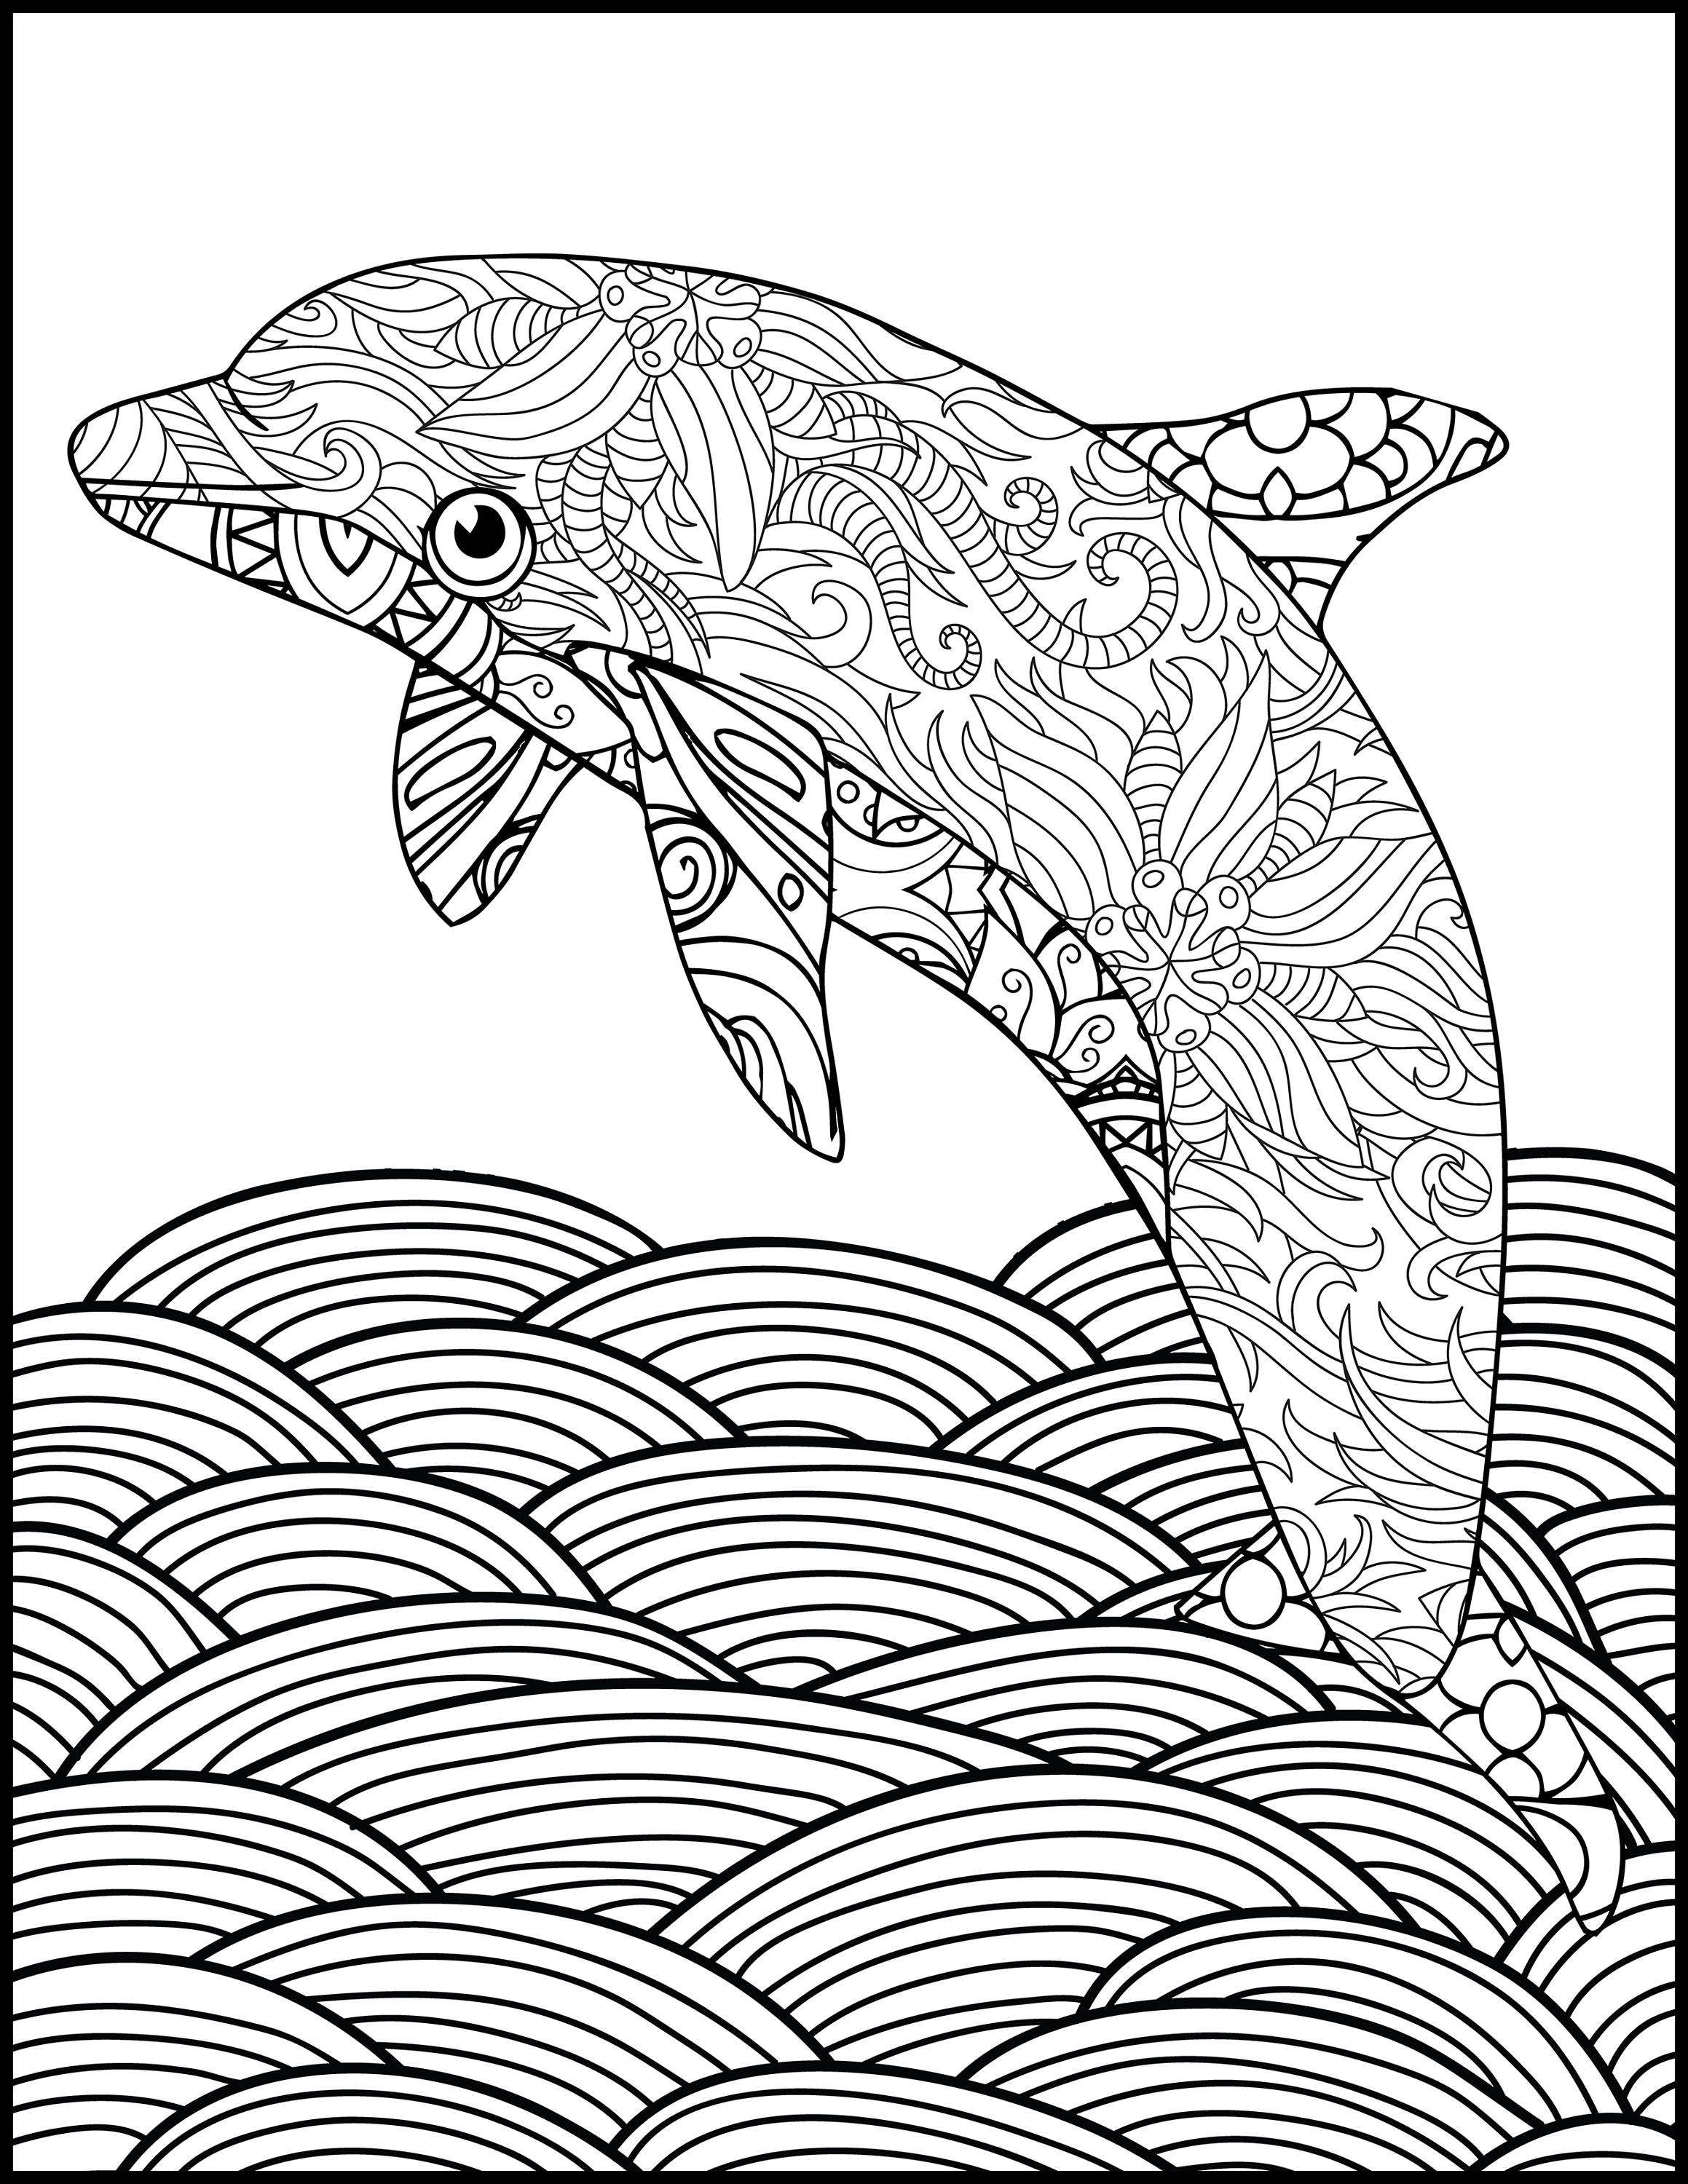 dolphin coloring pages free printable printable coloring page adult coloring page dolphin etsy printable free dolphin coloring pages